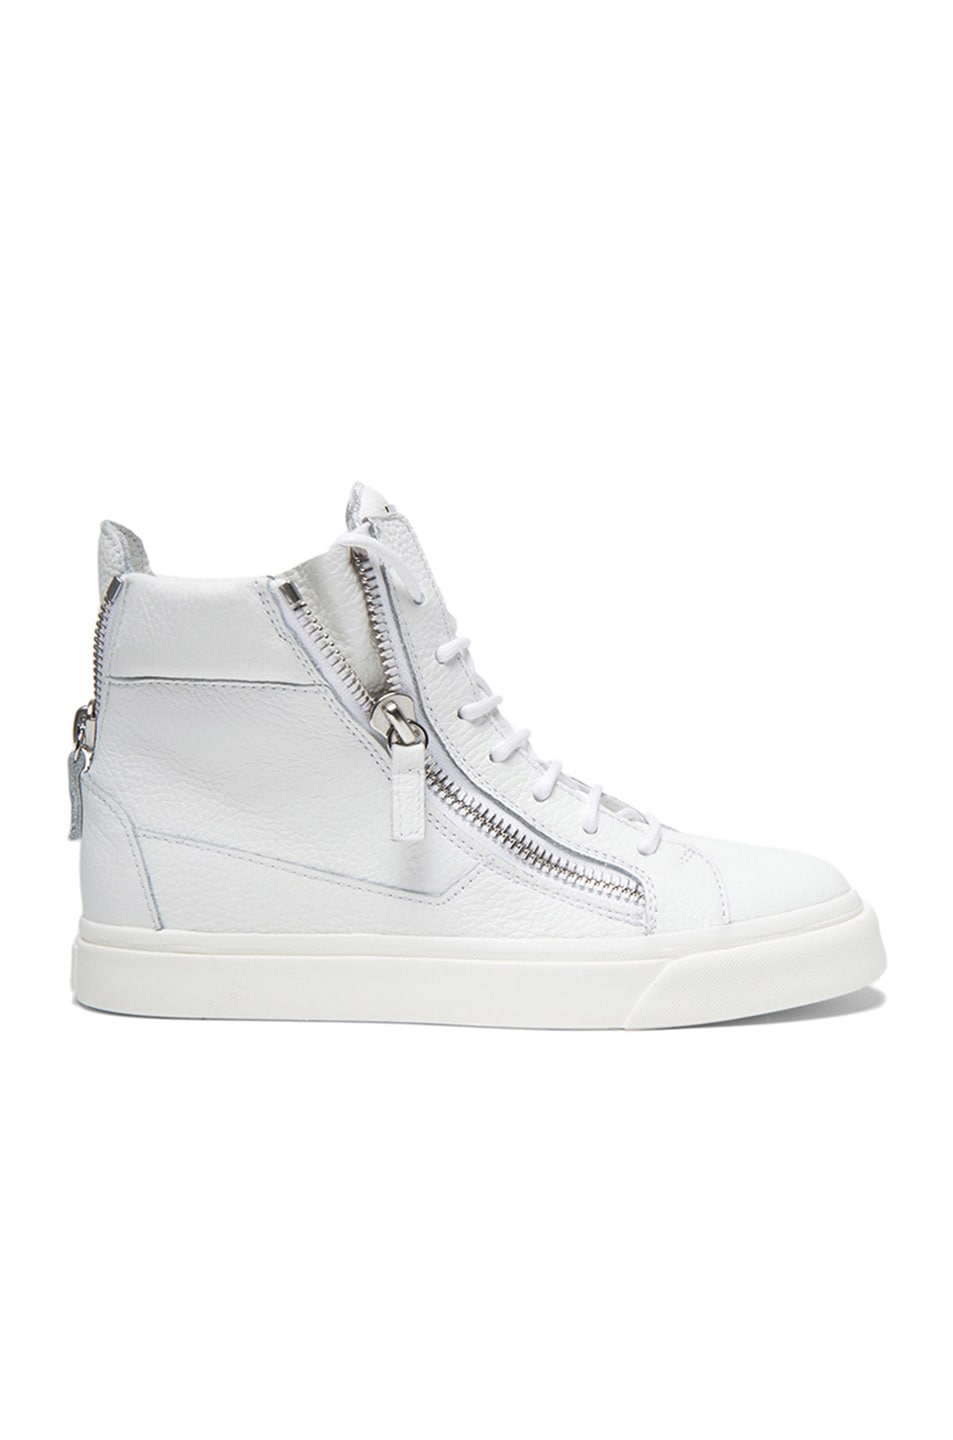 Image 1 of Giuseppe Zanotti Lindos Leather Sneakers in White